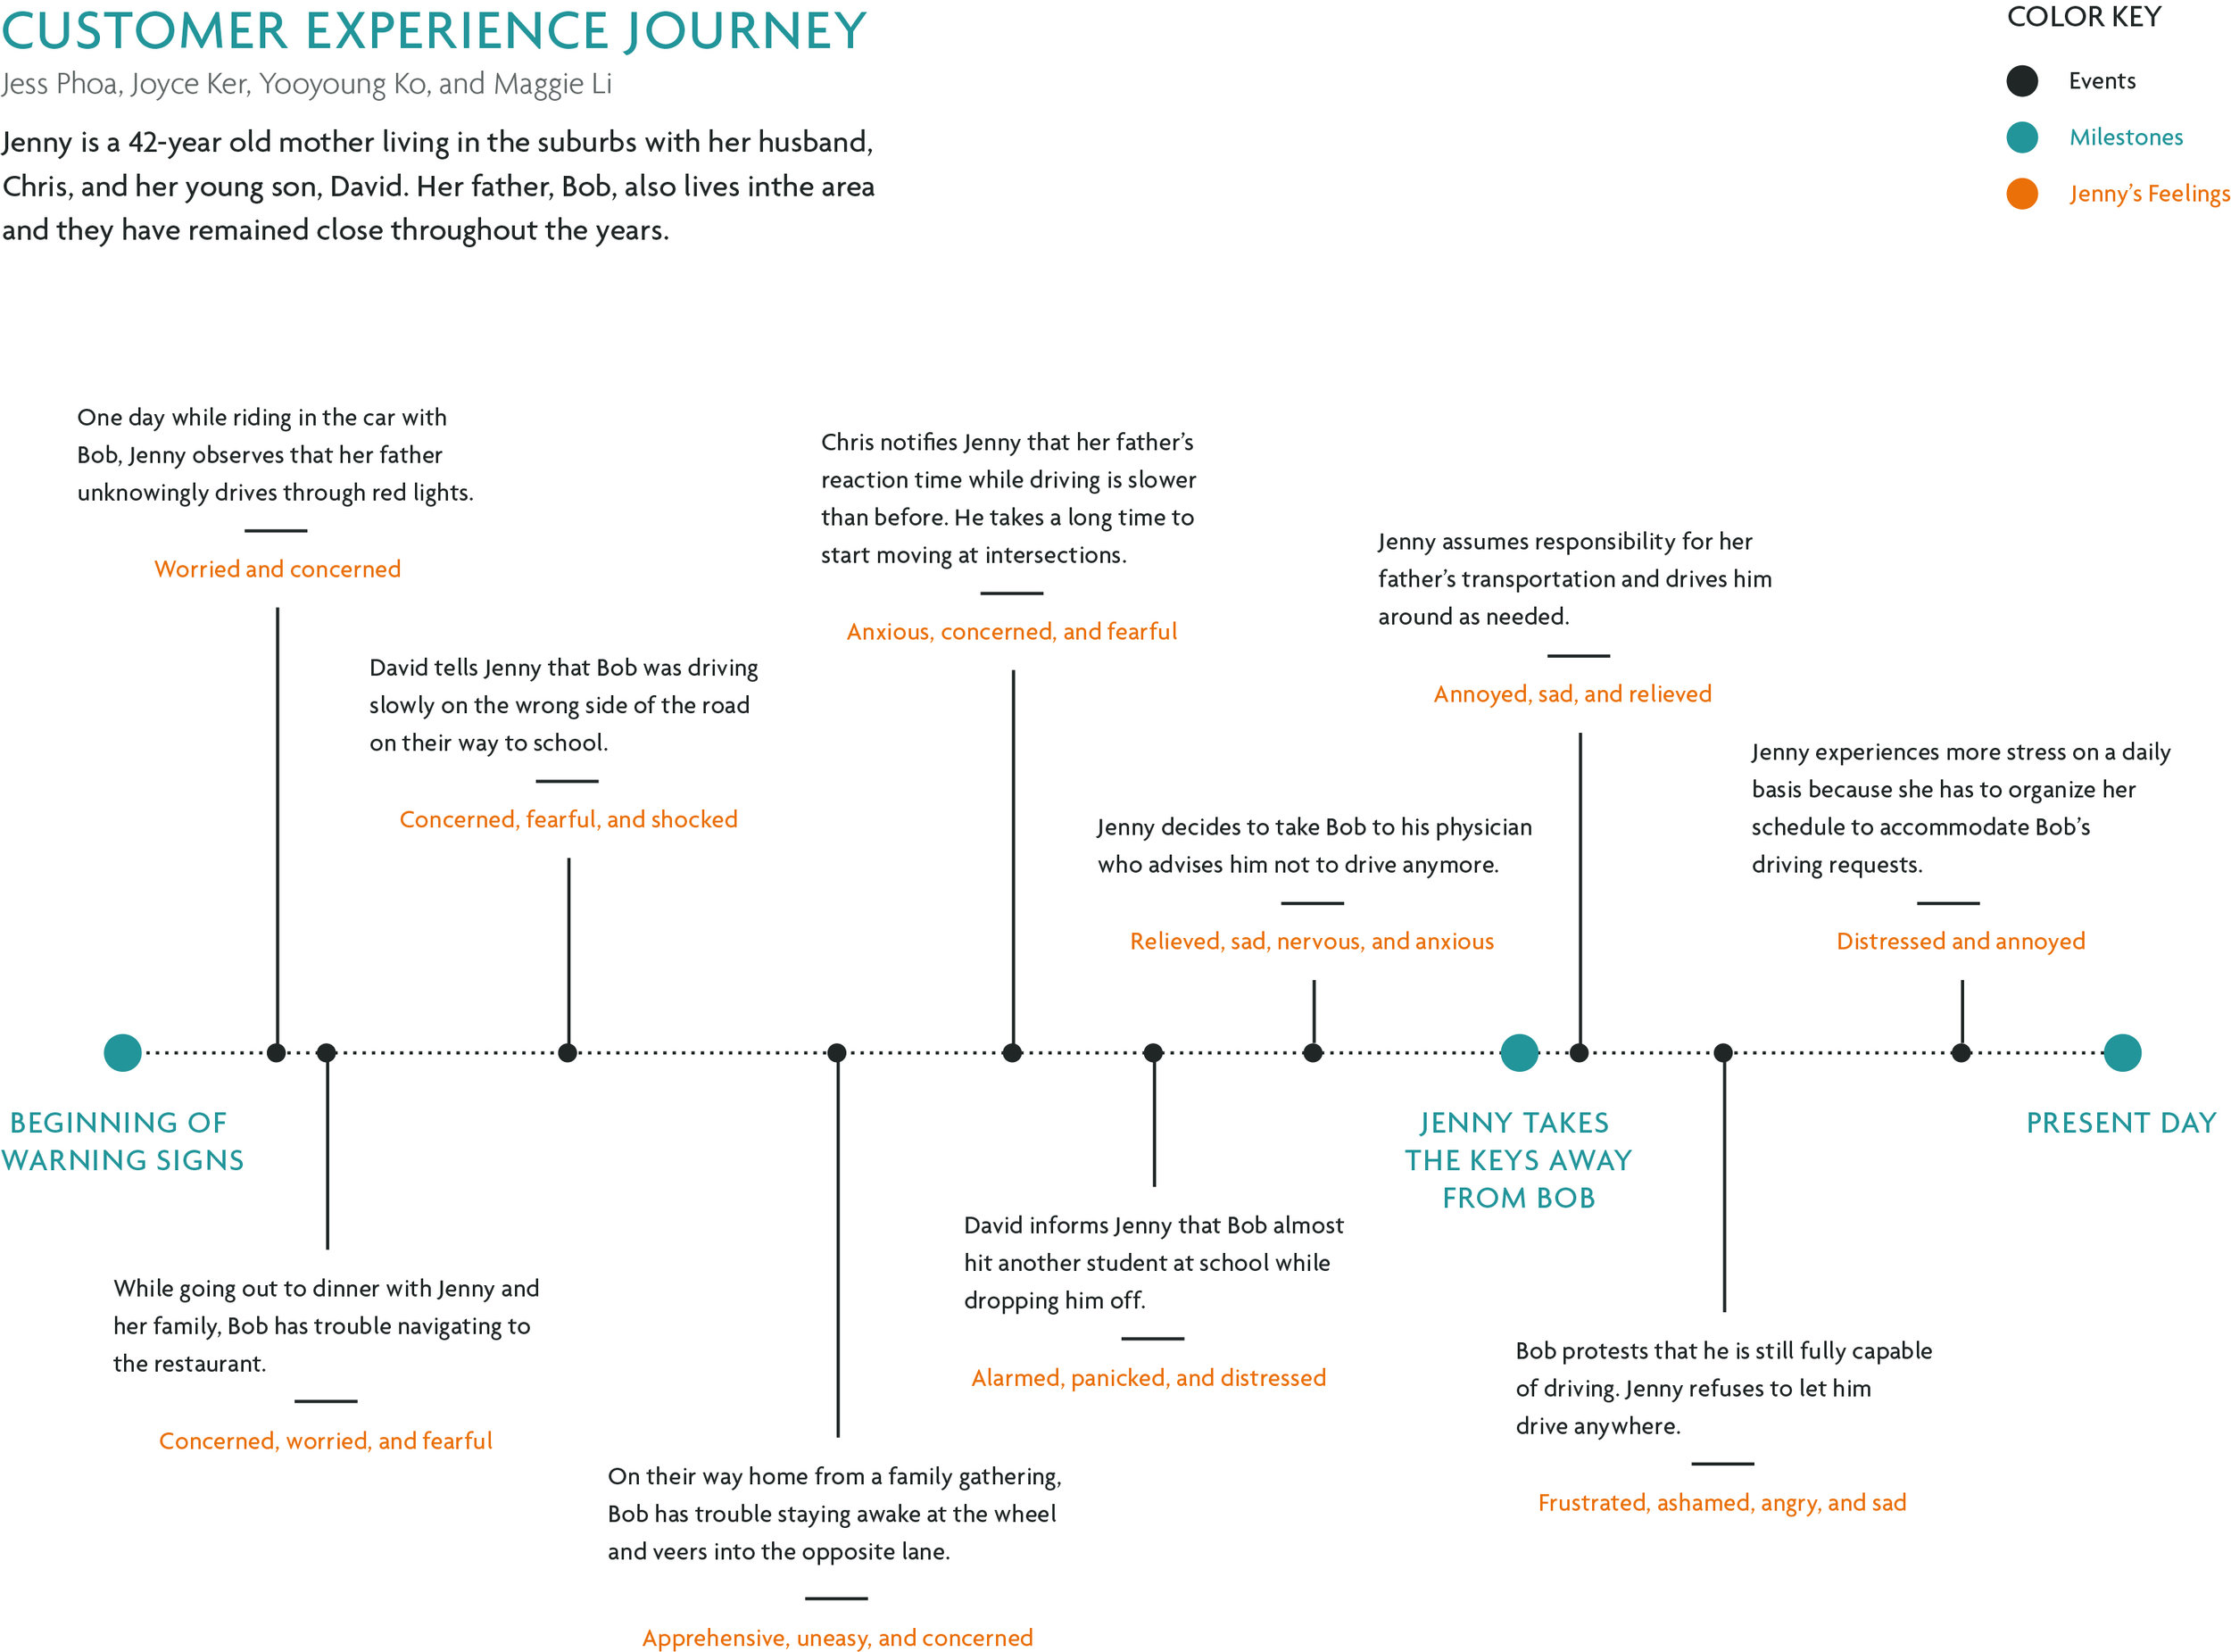 Current customer experience journey without Trek